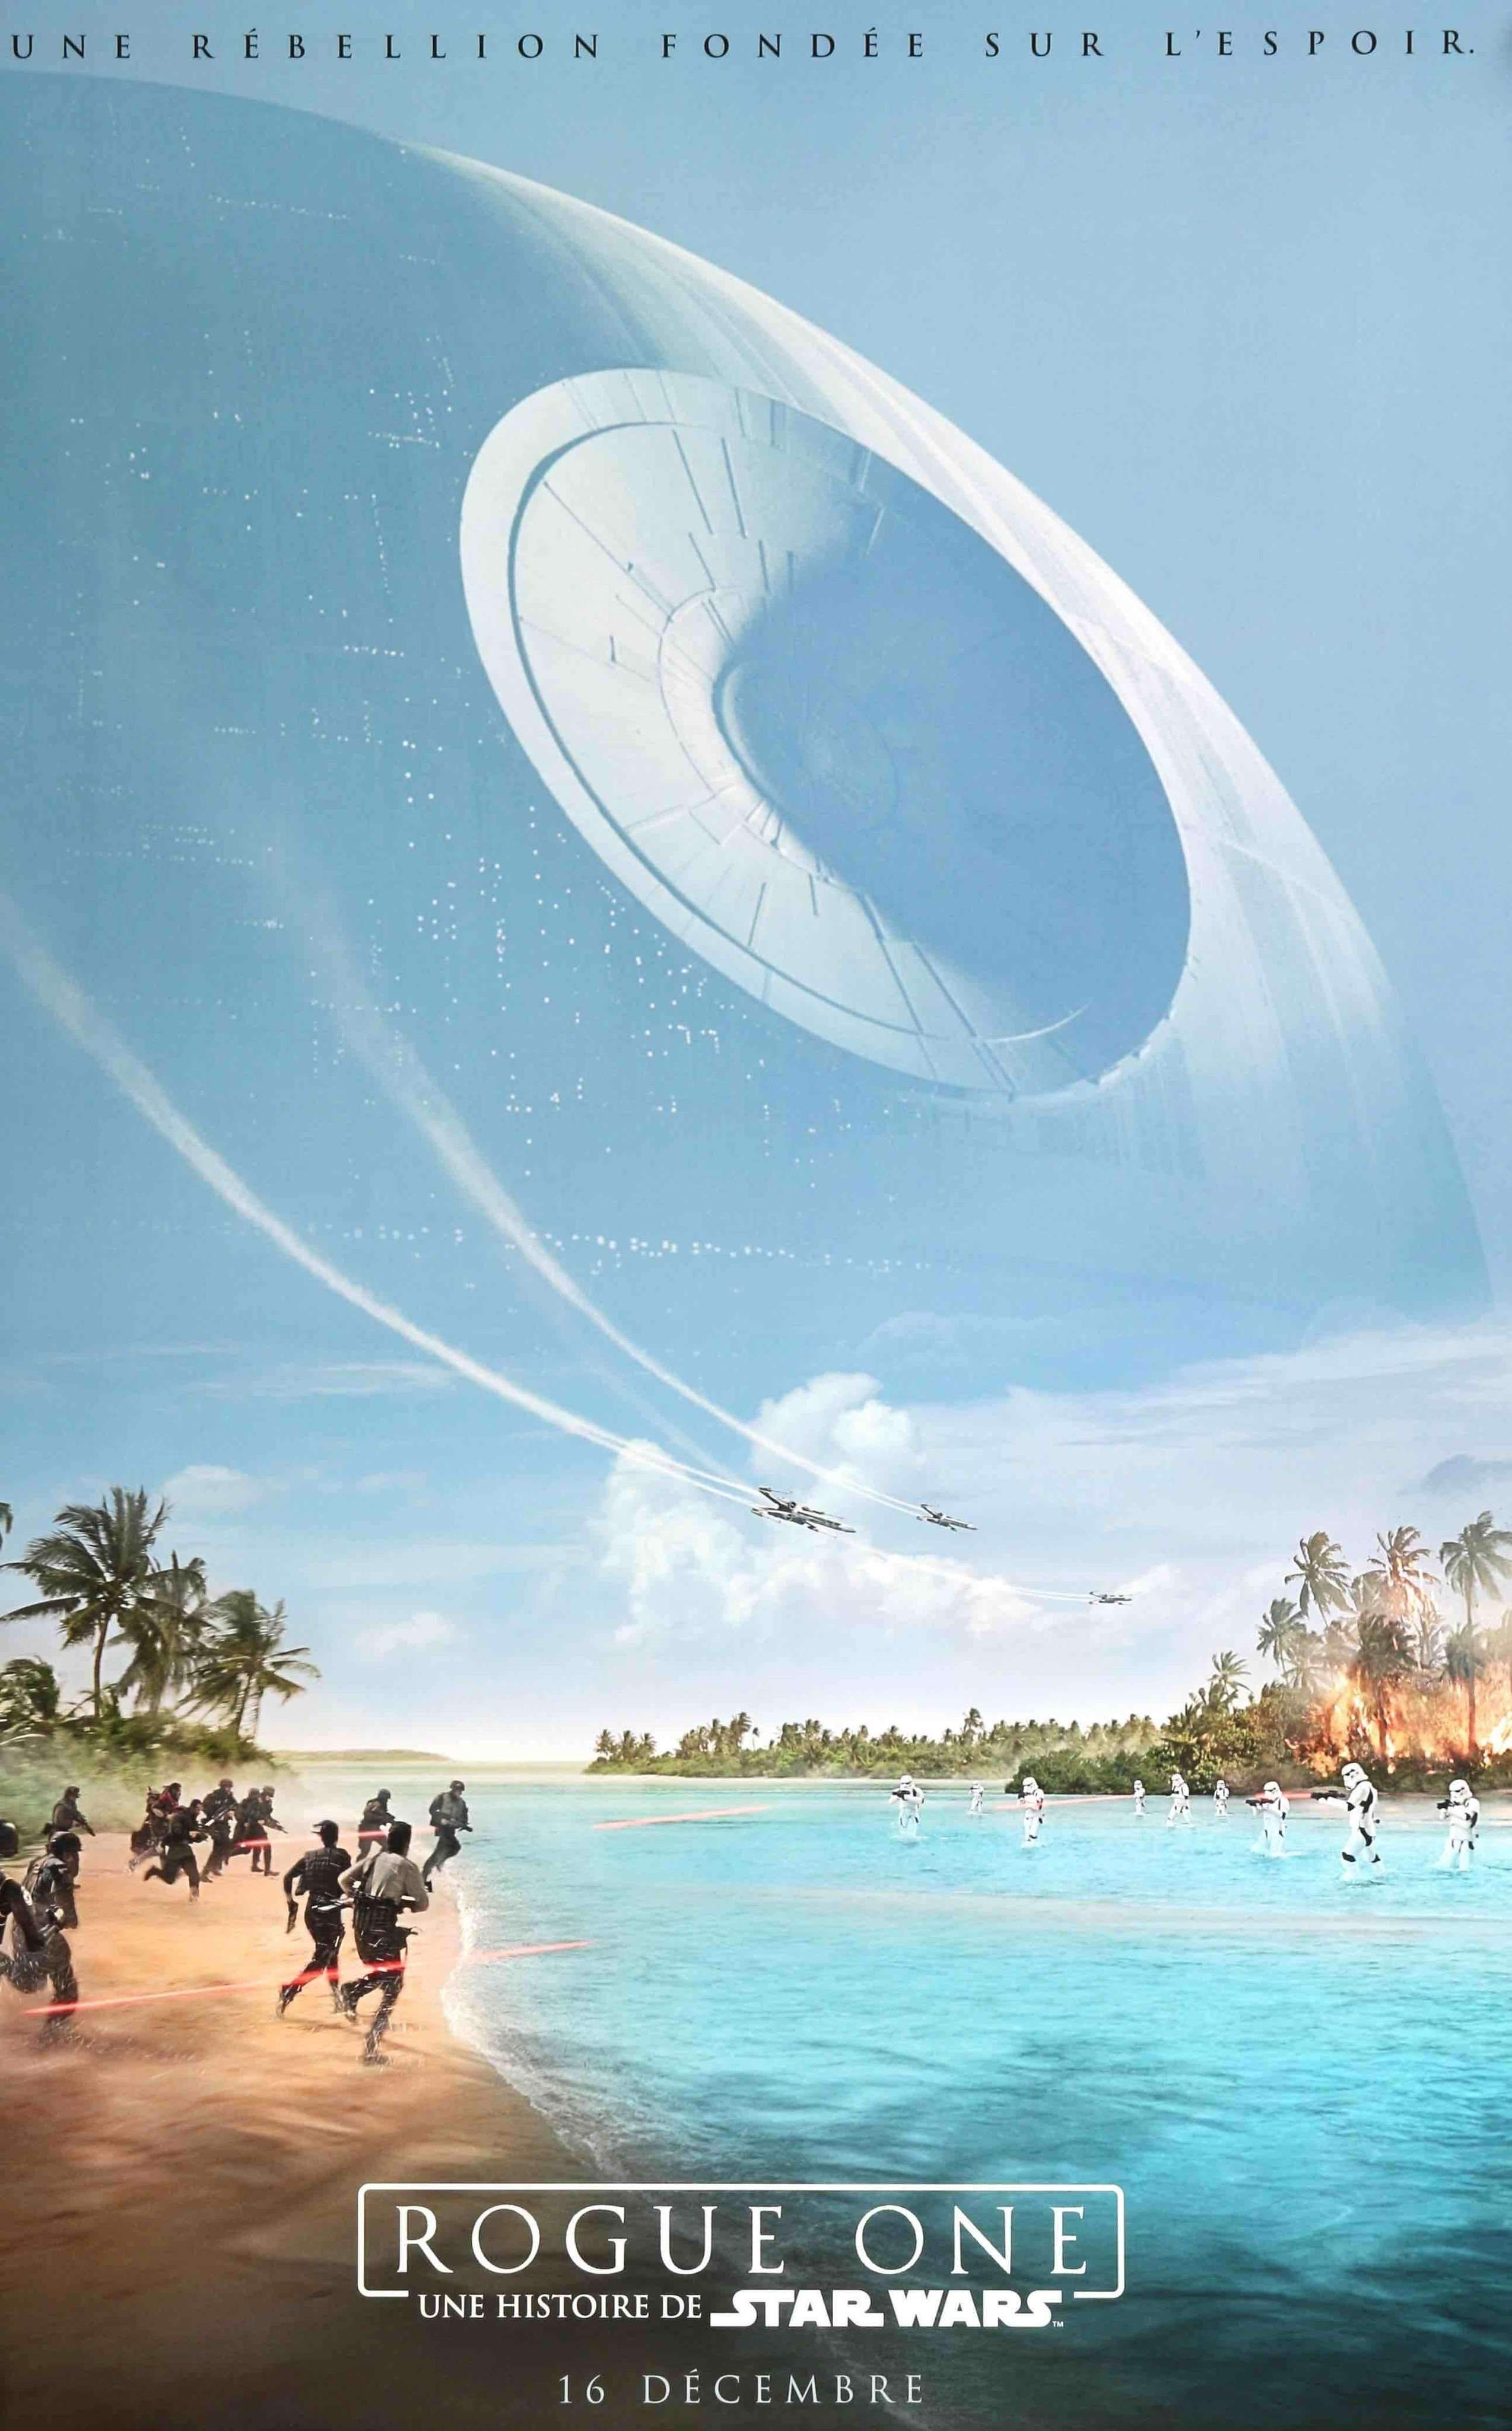 Rogue One A Star Wars Story 2016 Rogue One Star Wars Star Wars Poster Rogue One Poster